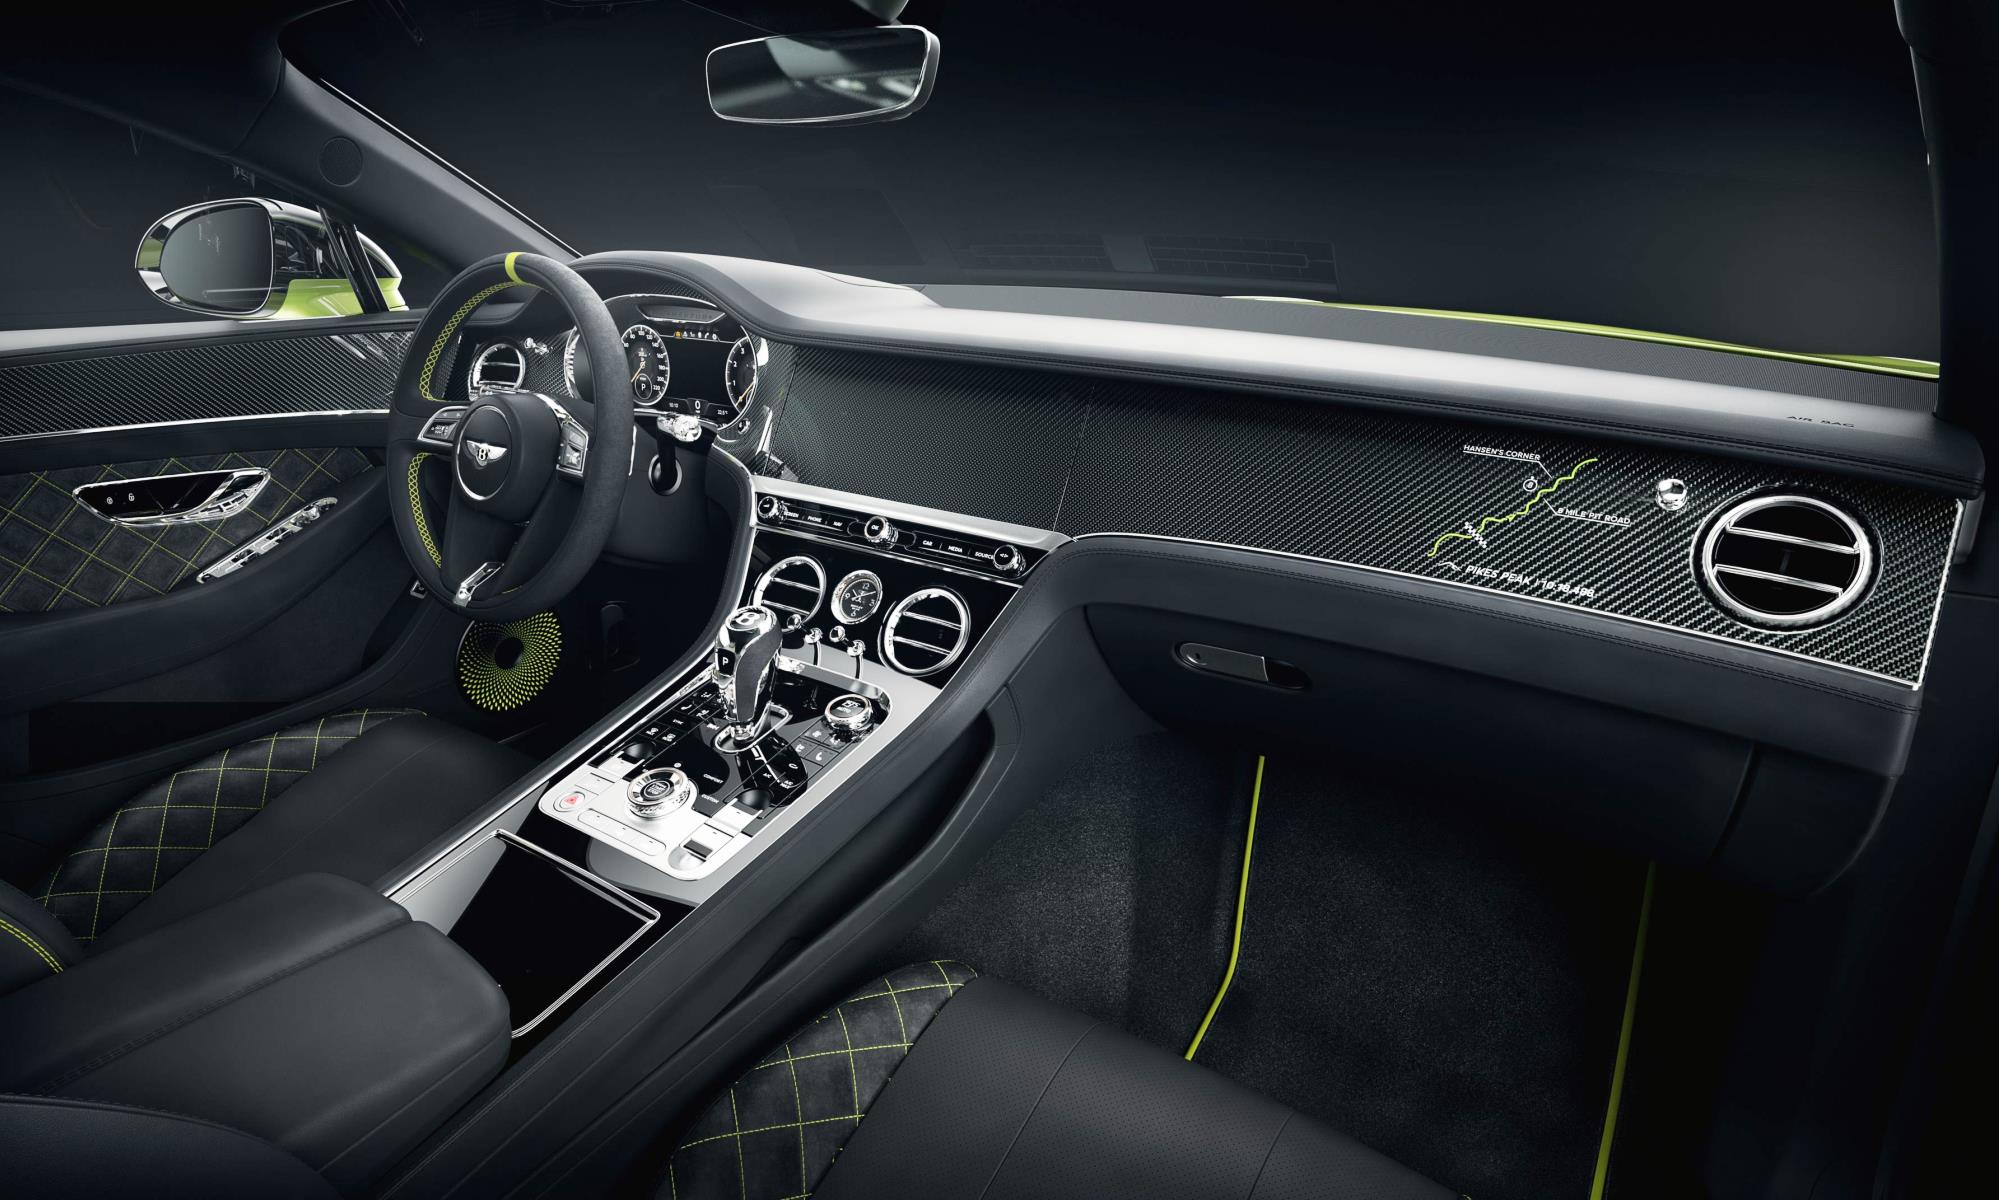 Continental GT Limited Edition interior